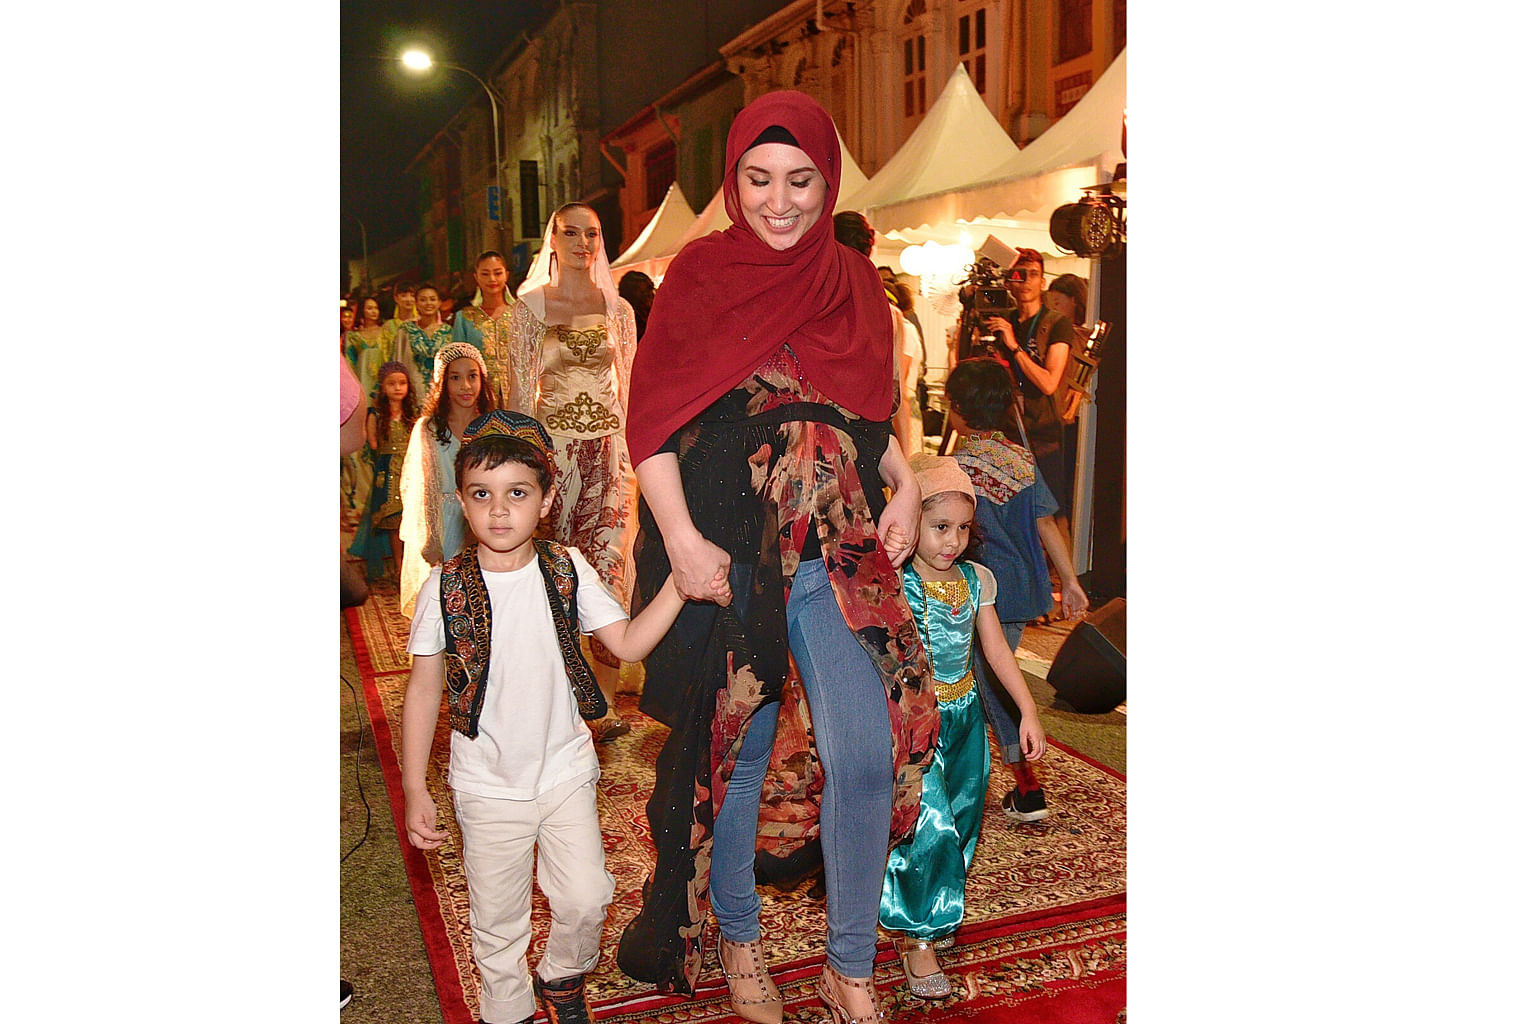 Models at the outdoor fashion show in Kampong Glam yesterday. The show featured designs inspired by the architectural features and history of the precinct, using textiles sourced from merchants in Arab Street. The event was part of the Great Singapore Sal